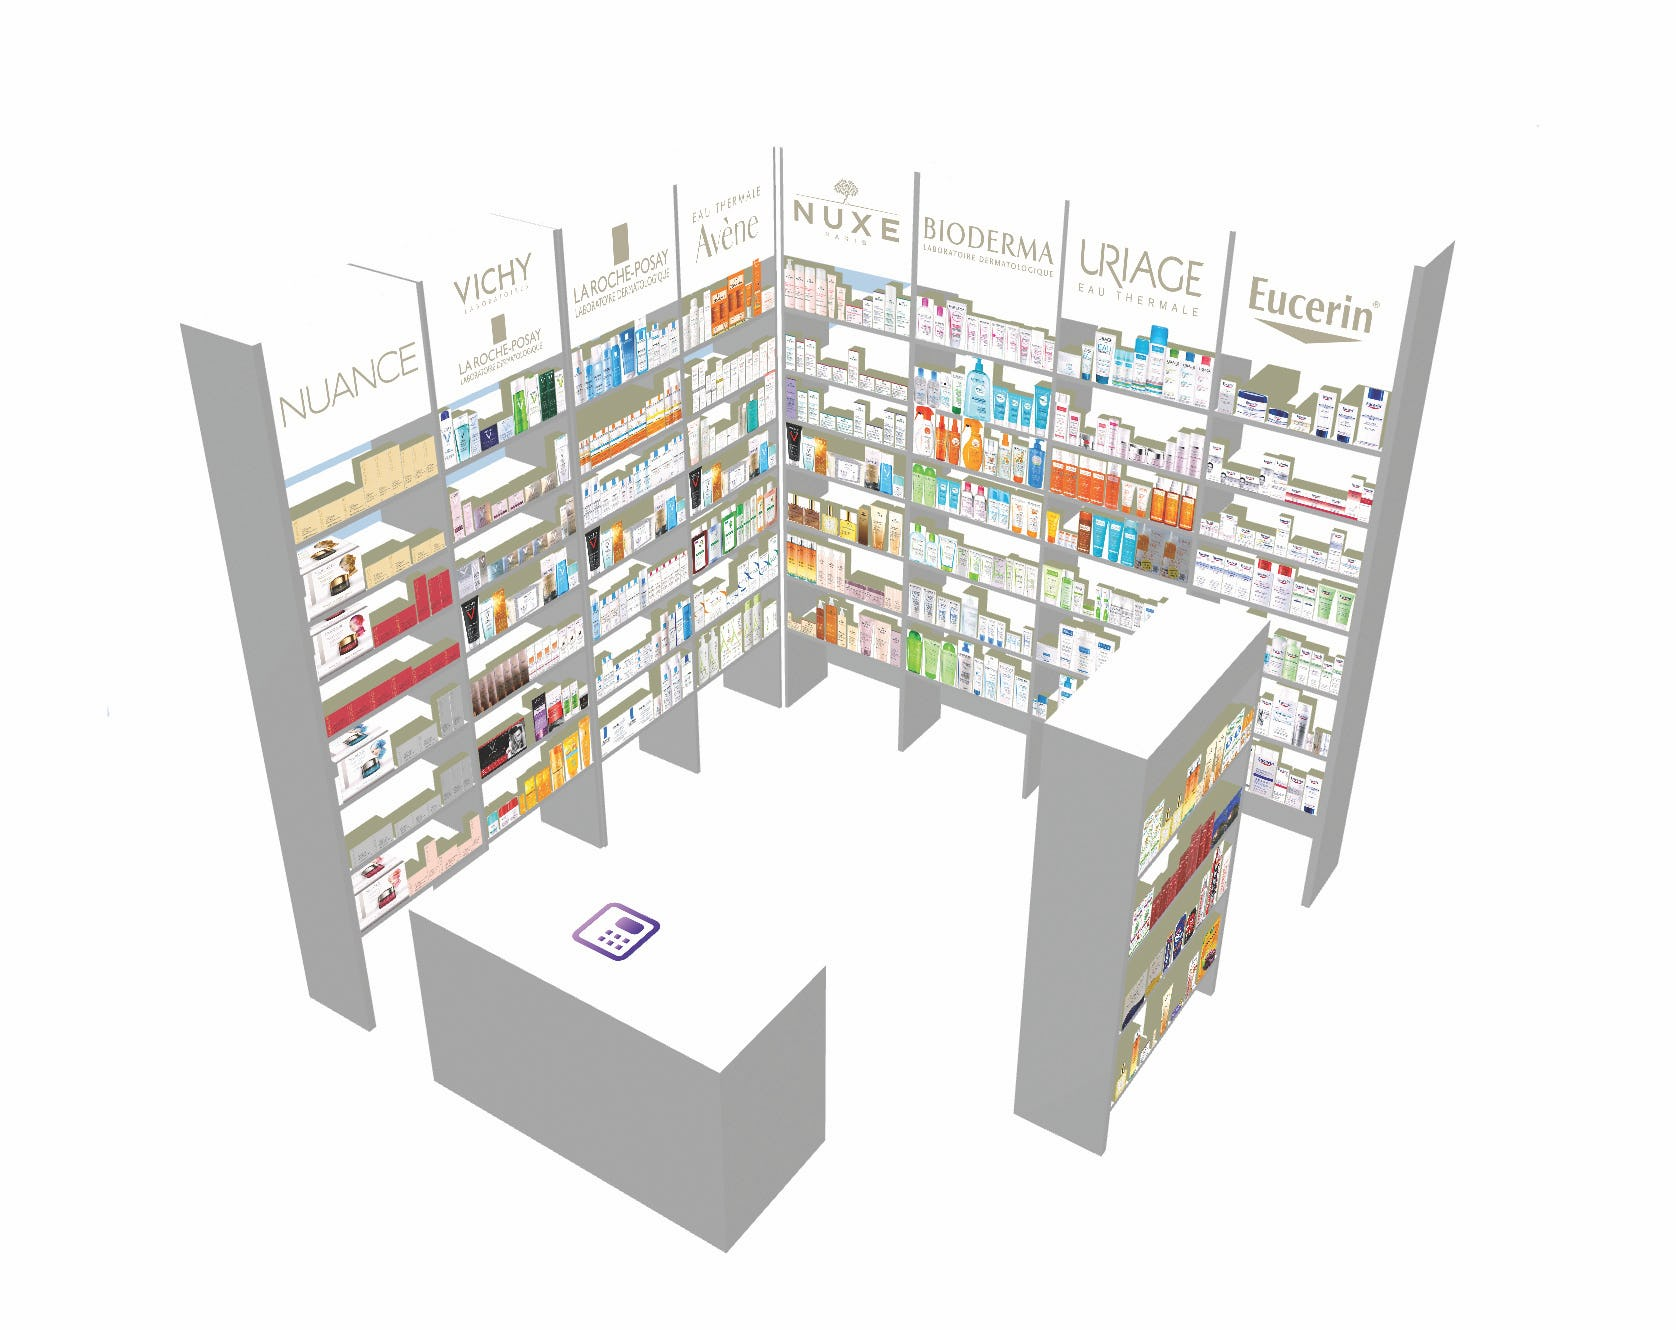 Quant Software - 3D Store Generated Automatically from 2D Floor Plan and Planograms